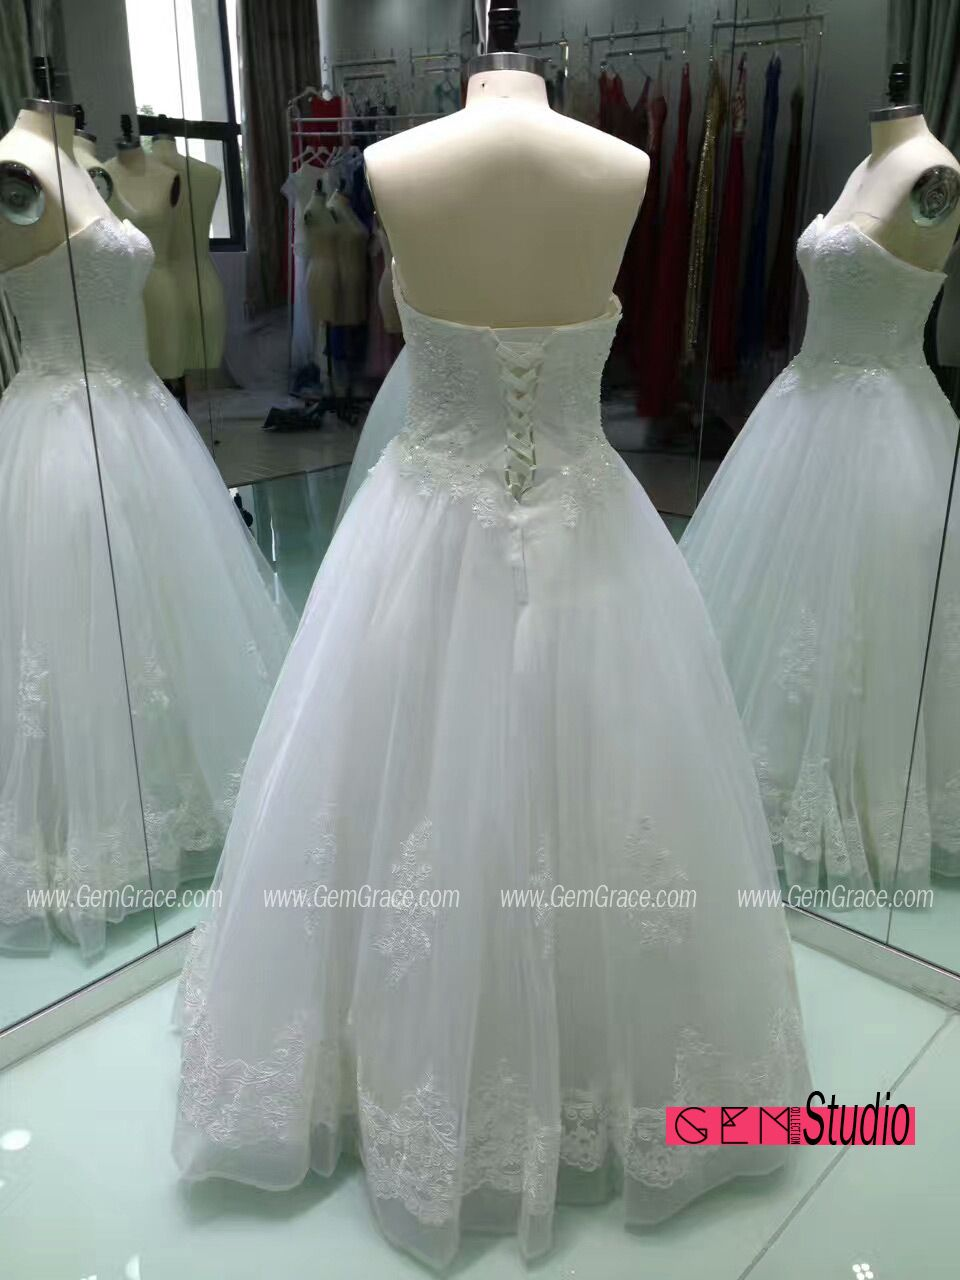 Custom lace ballgown wedding dress with corset back Custom with